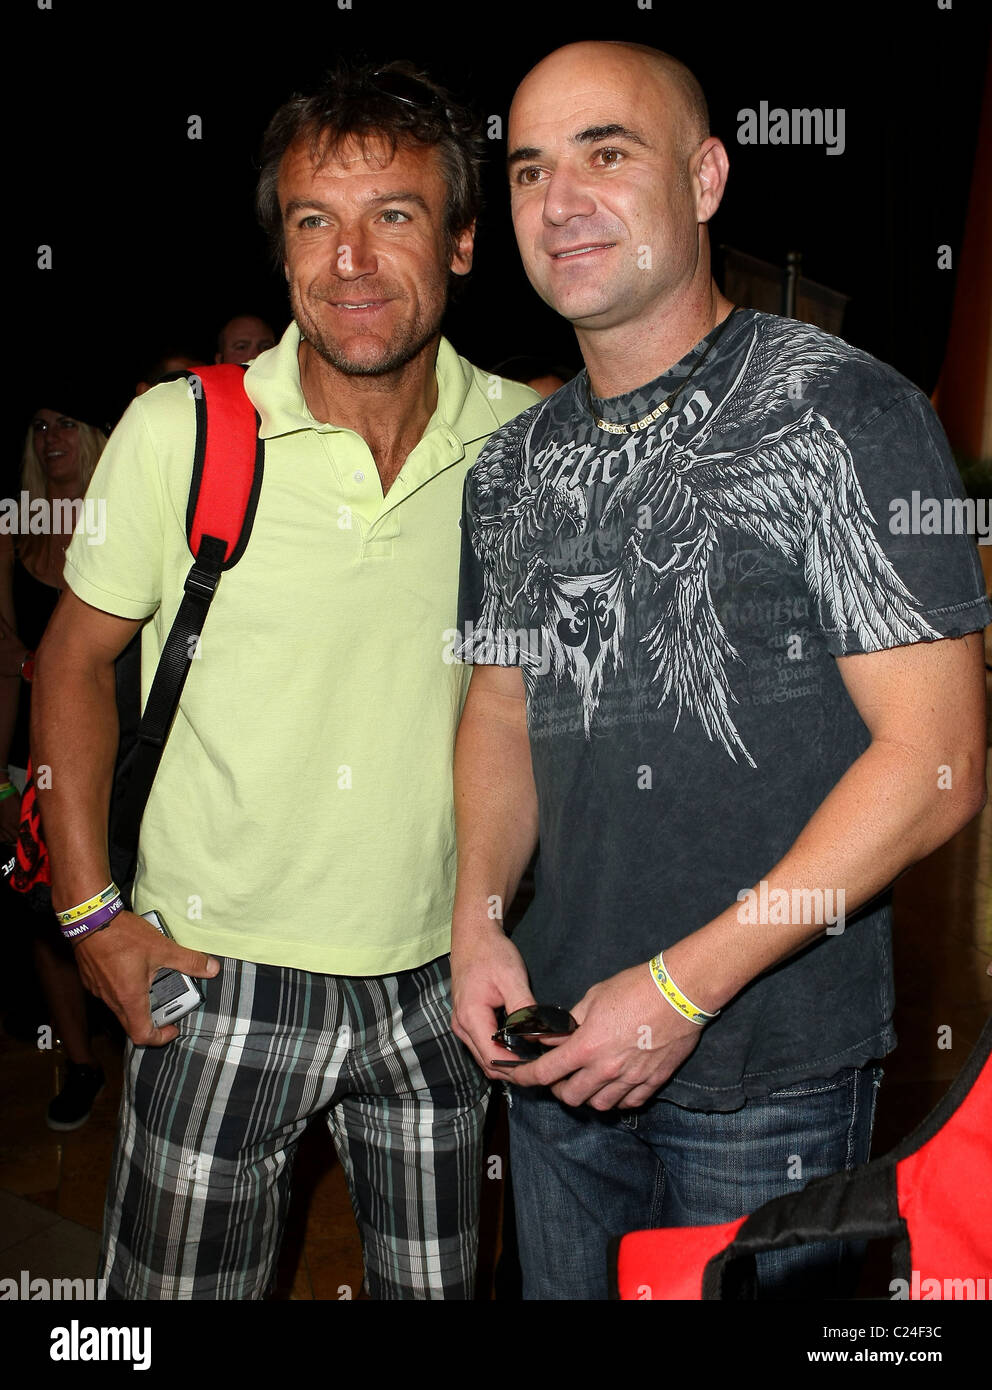 Mats Wilander and Andre Agassi Tony Hawk RIDE Presents The Stand